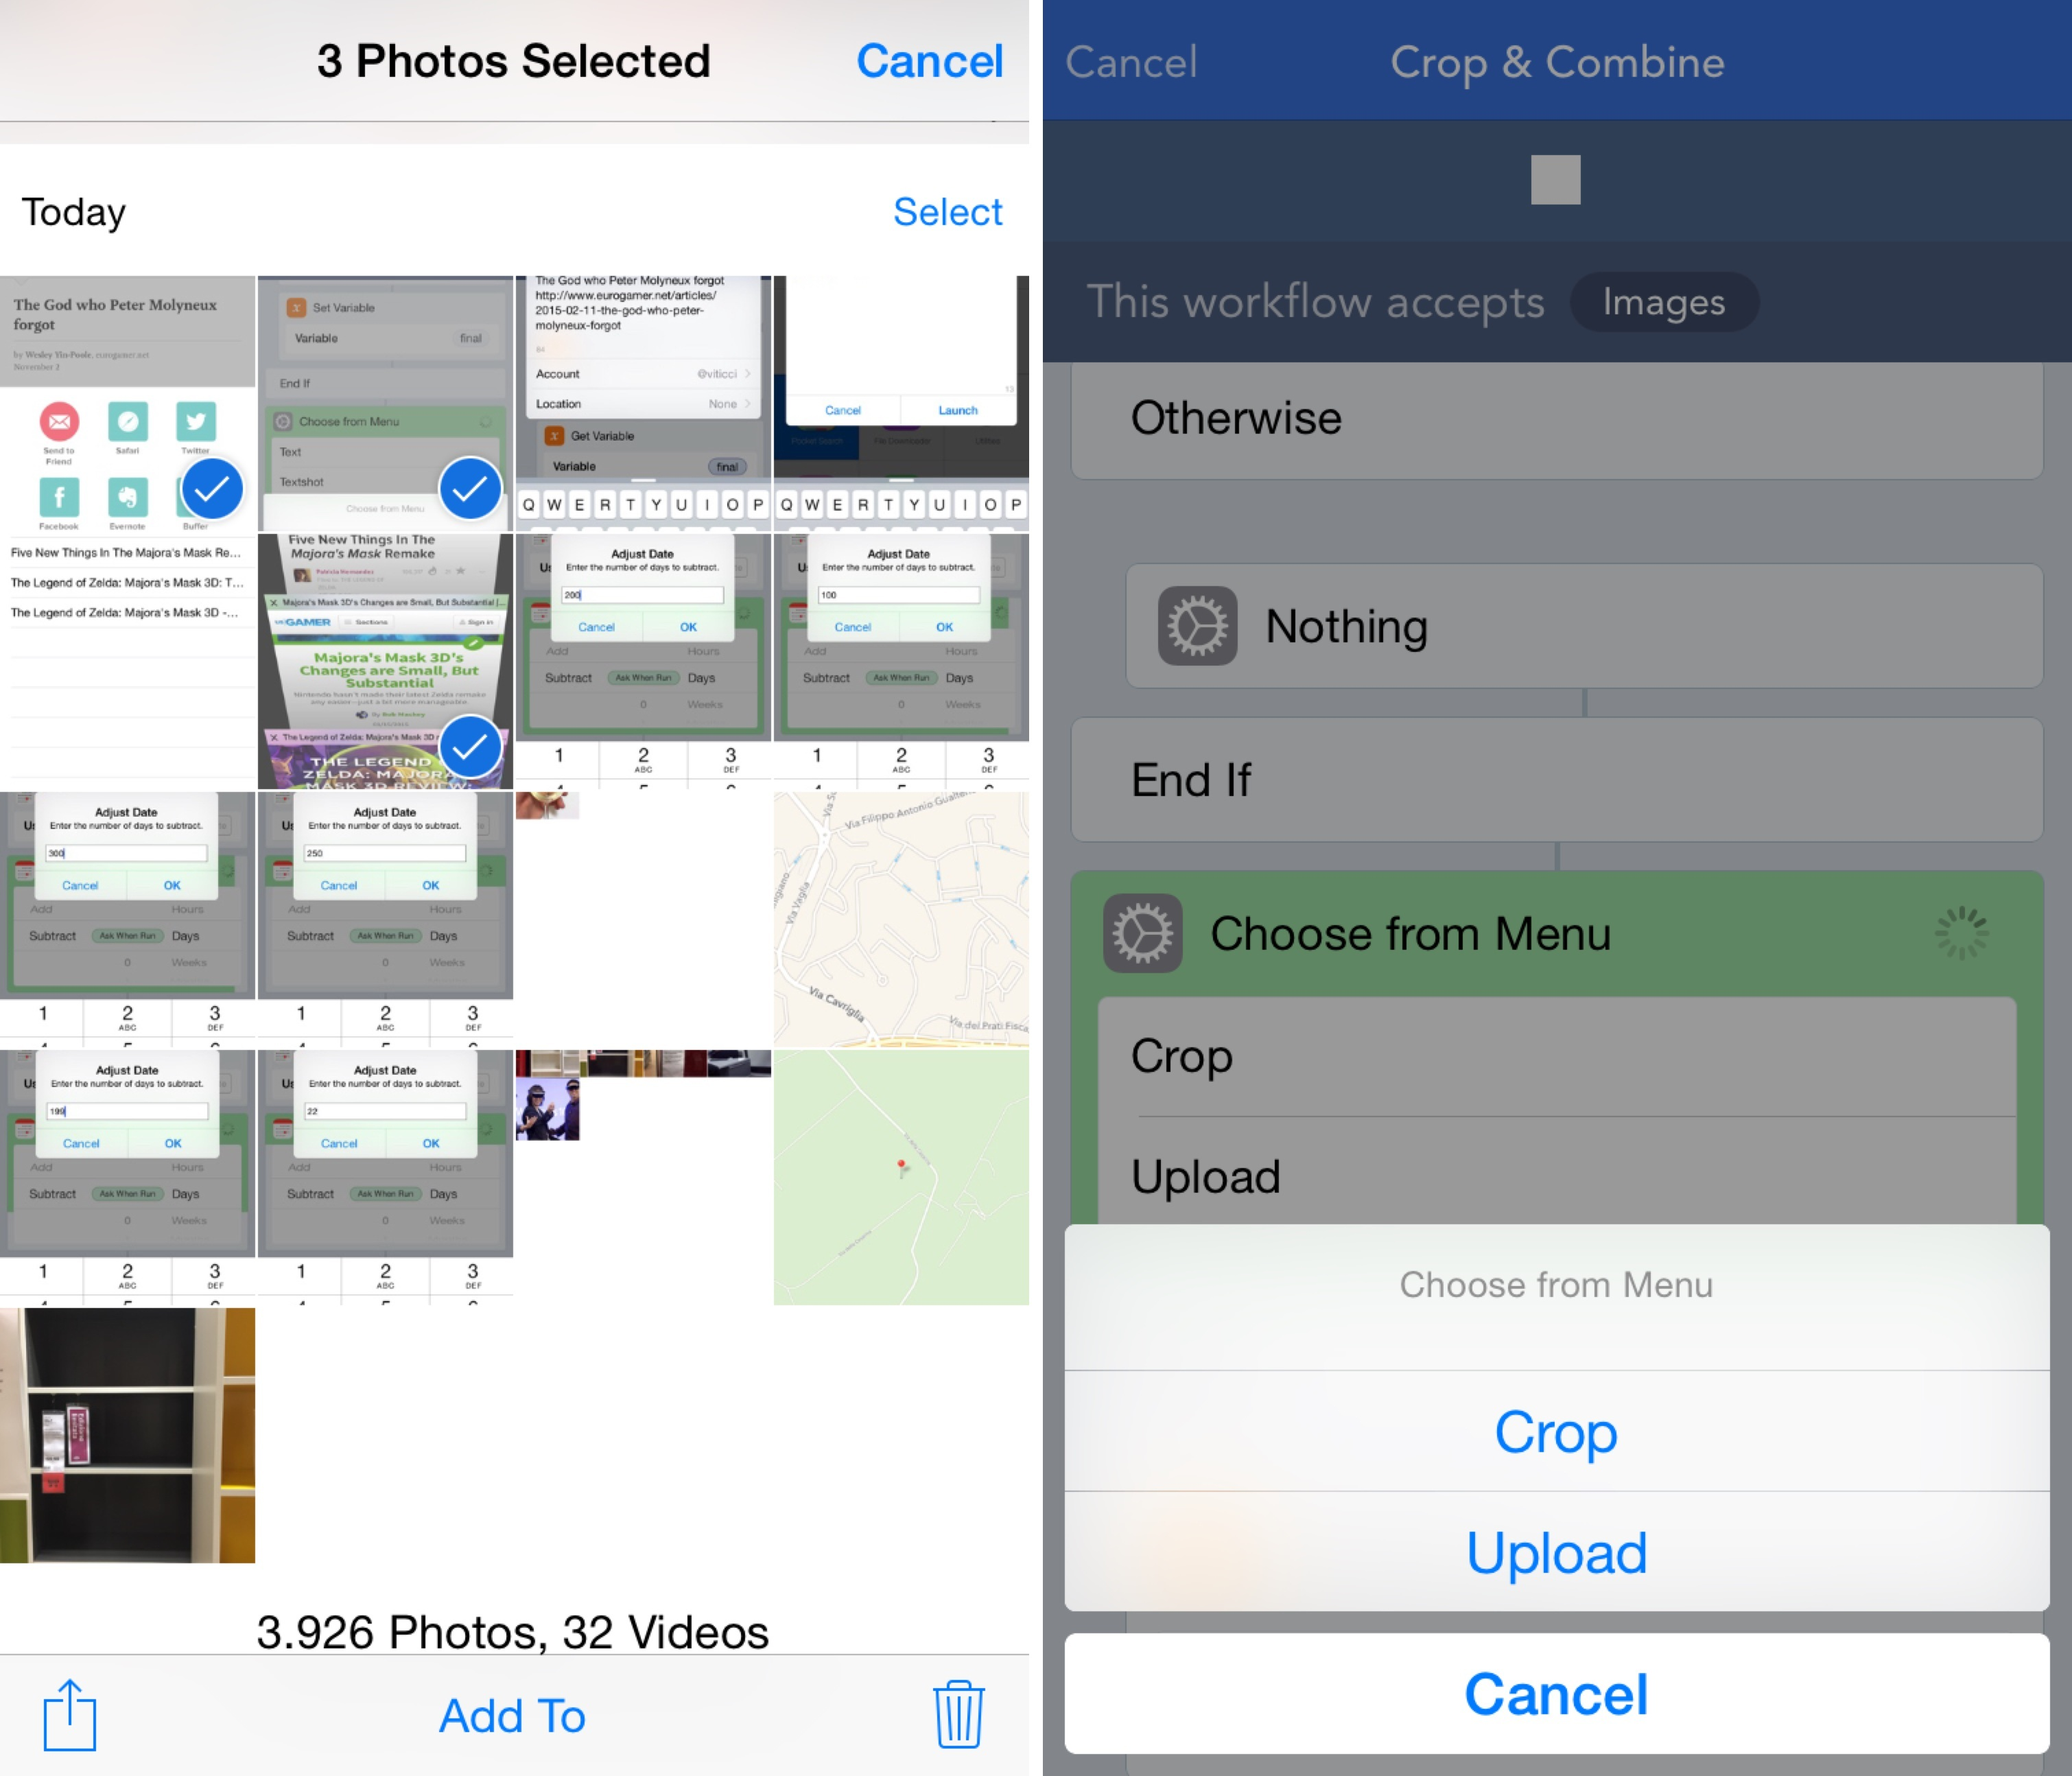 I can now crop and combined screenshots directly from the Photos app with extensions and Workflow.